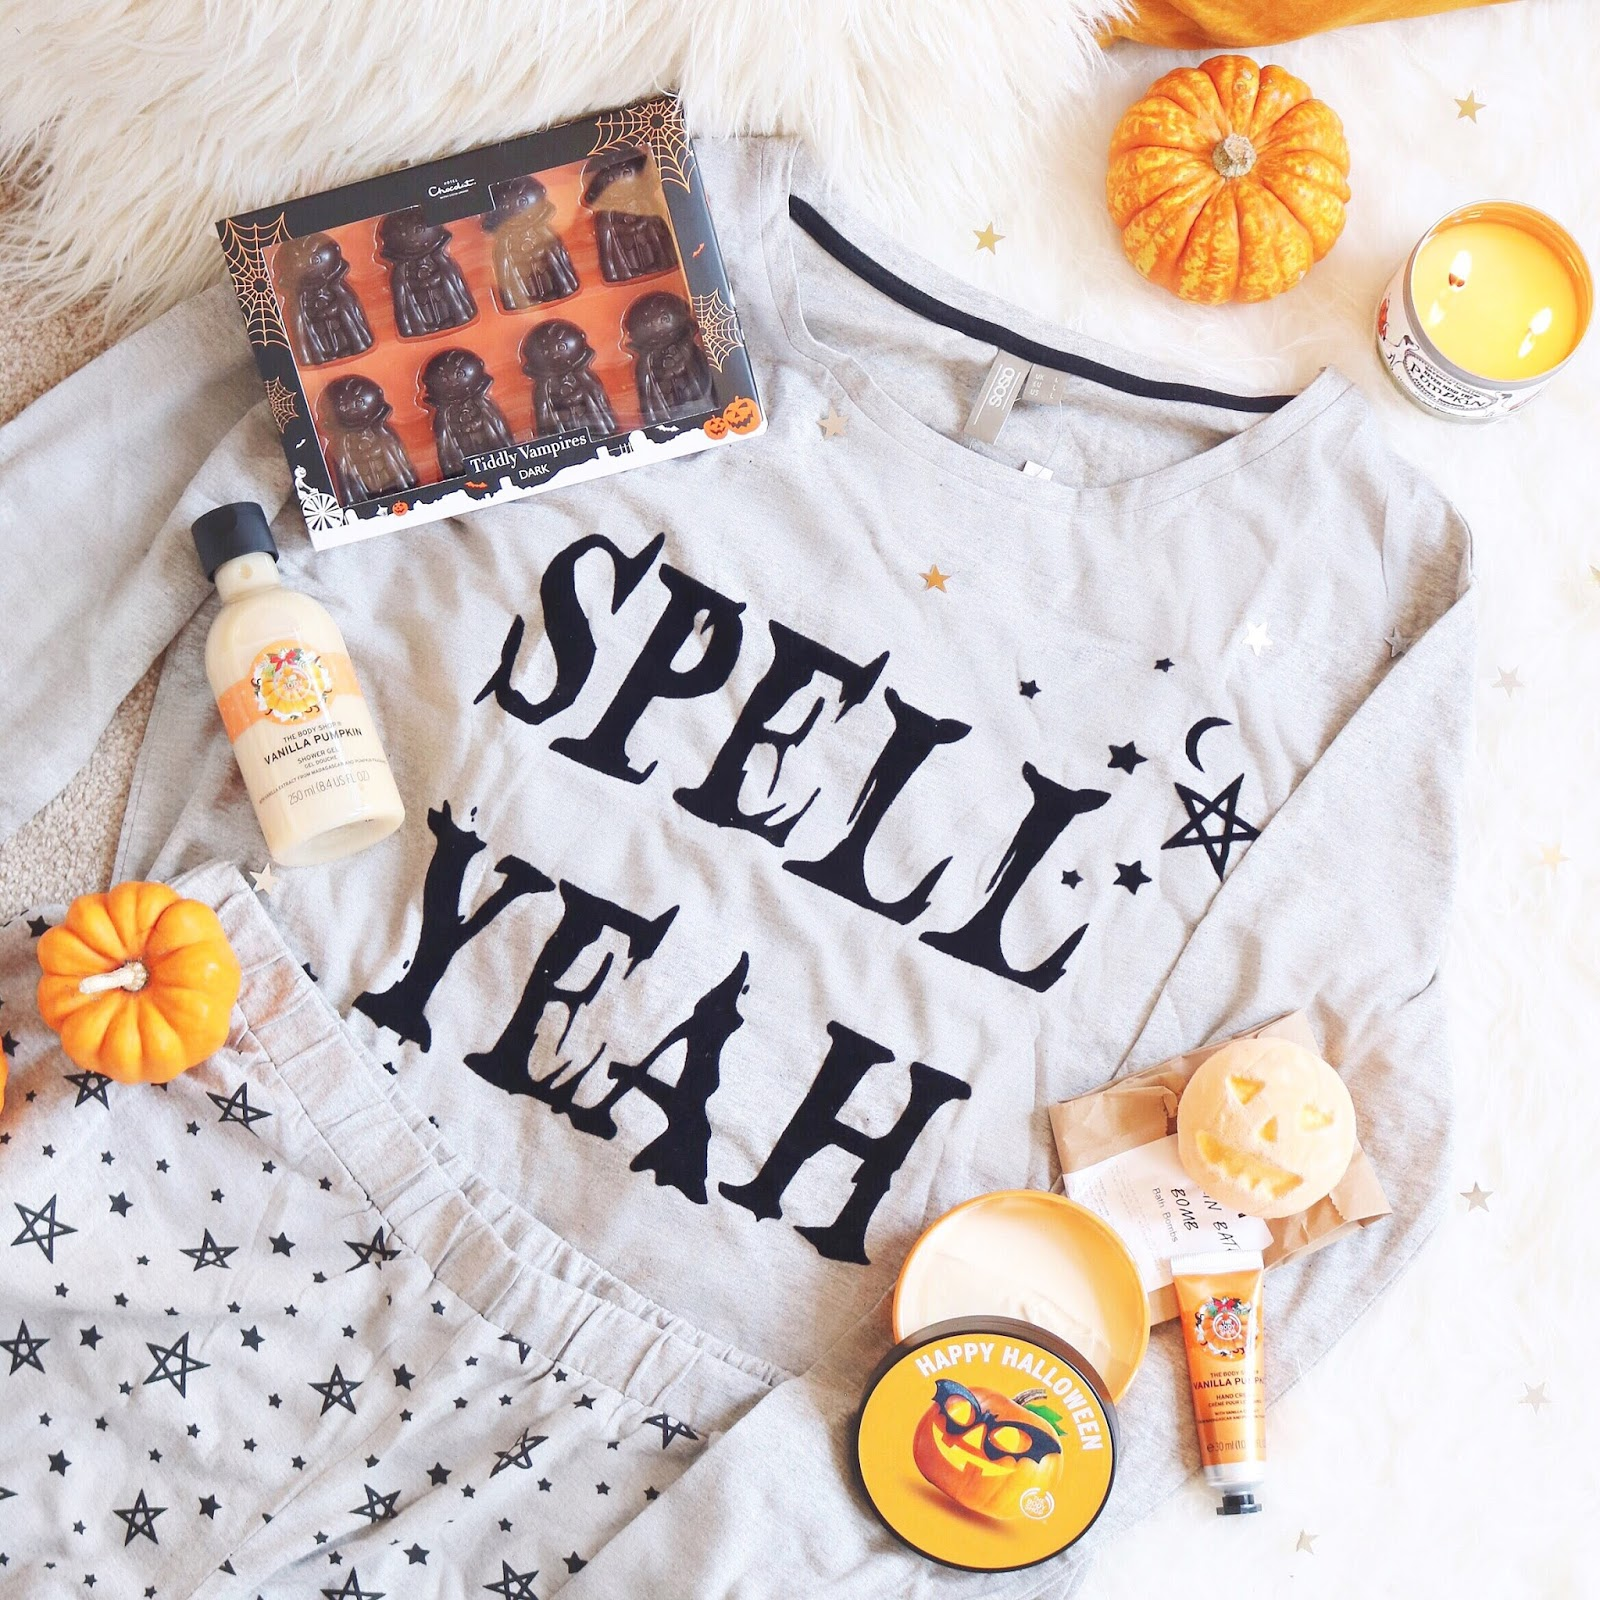 WHAT TO DO ON HALLOWEEN IF YOU'VE GOT NO PLANS - CALVIROSE